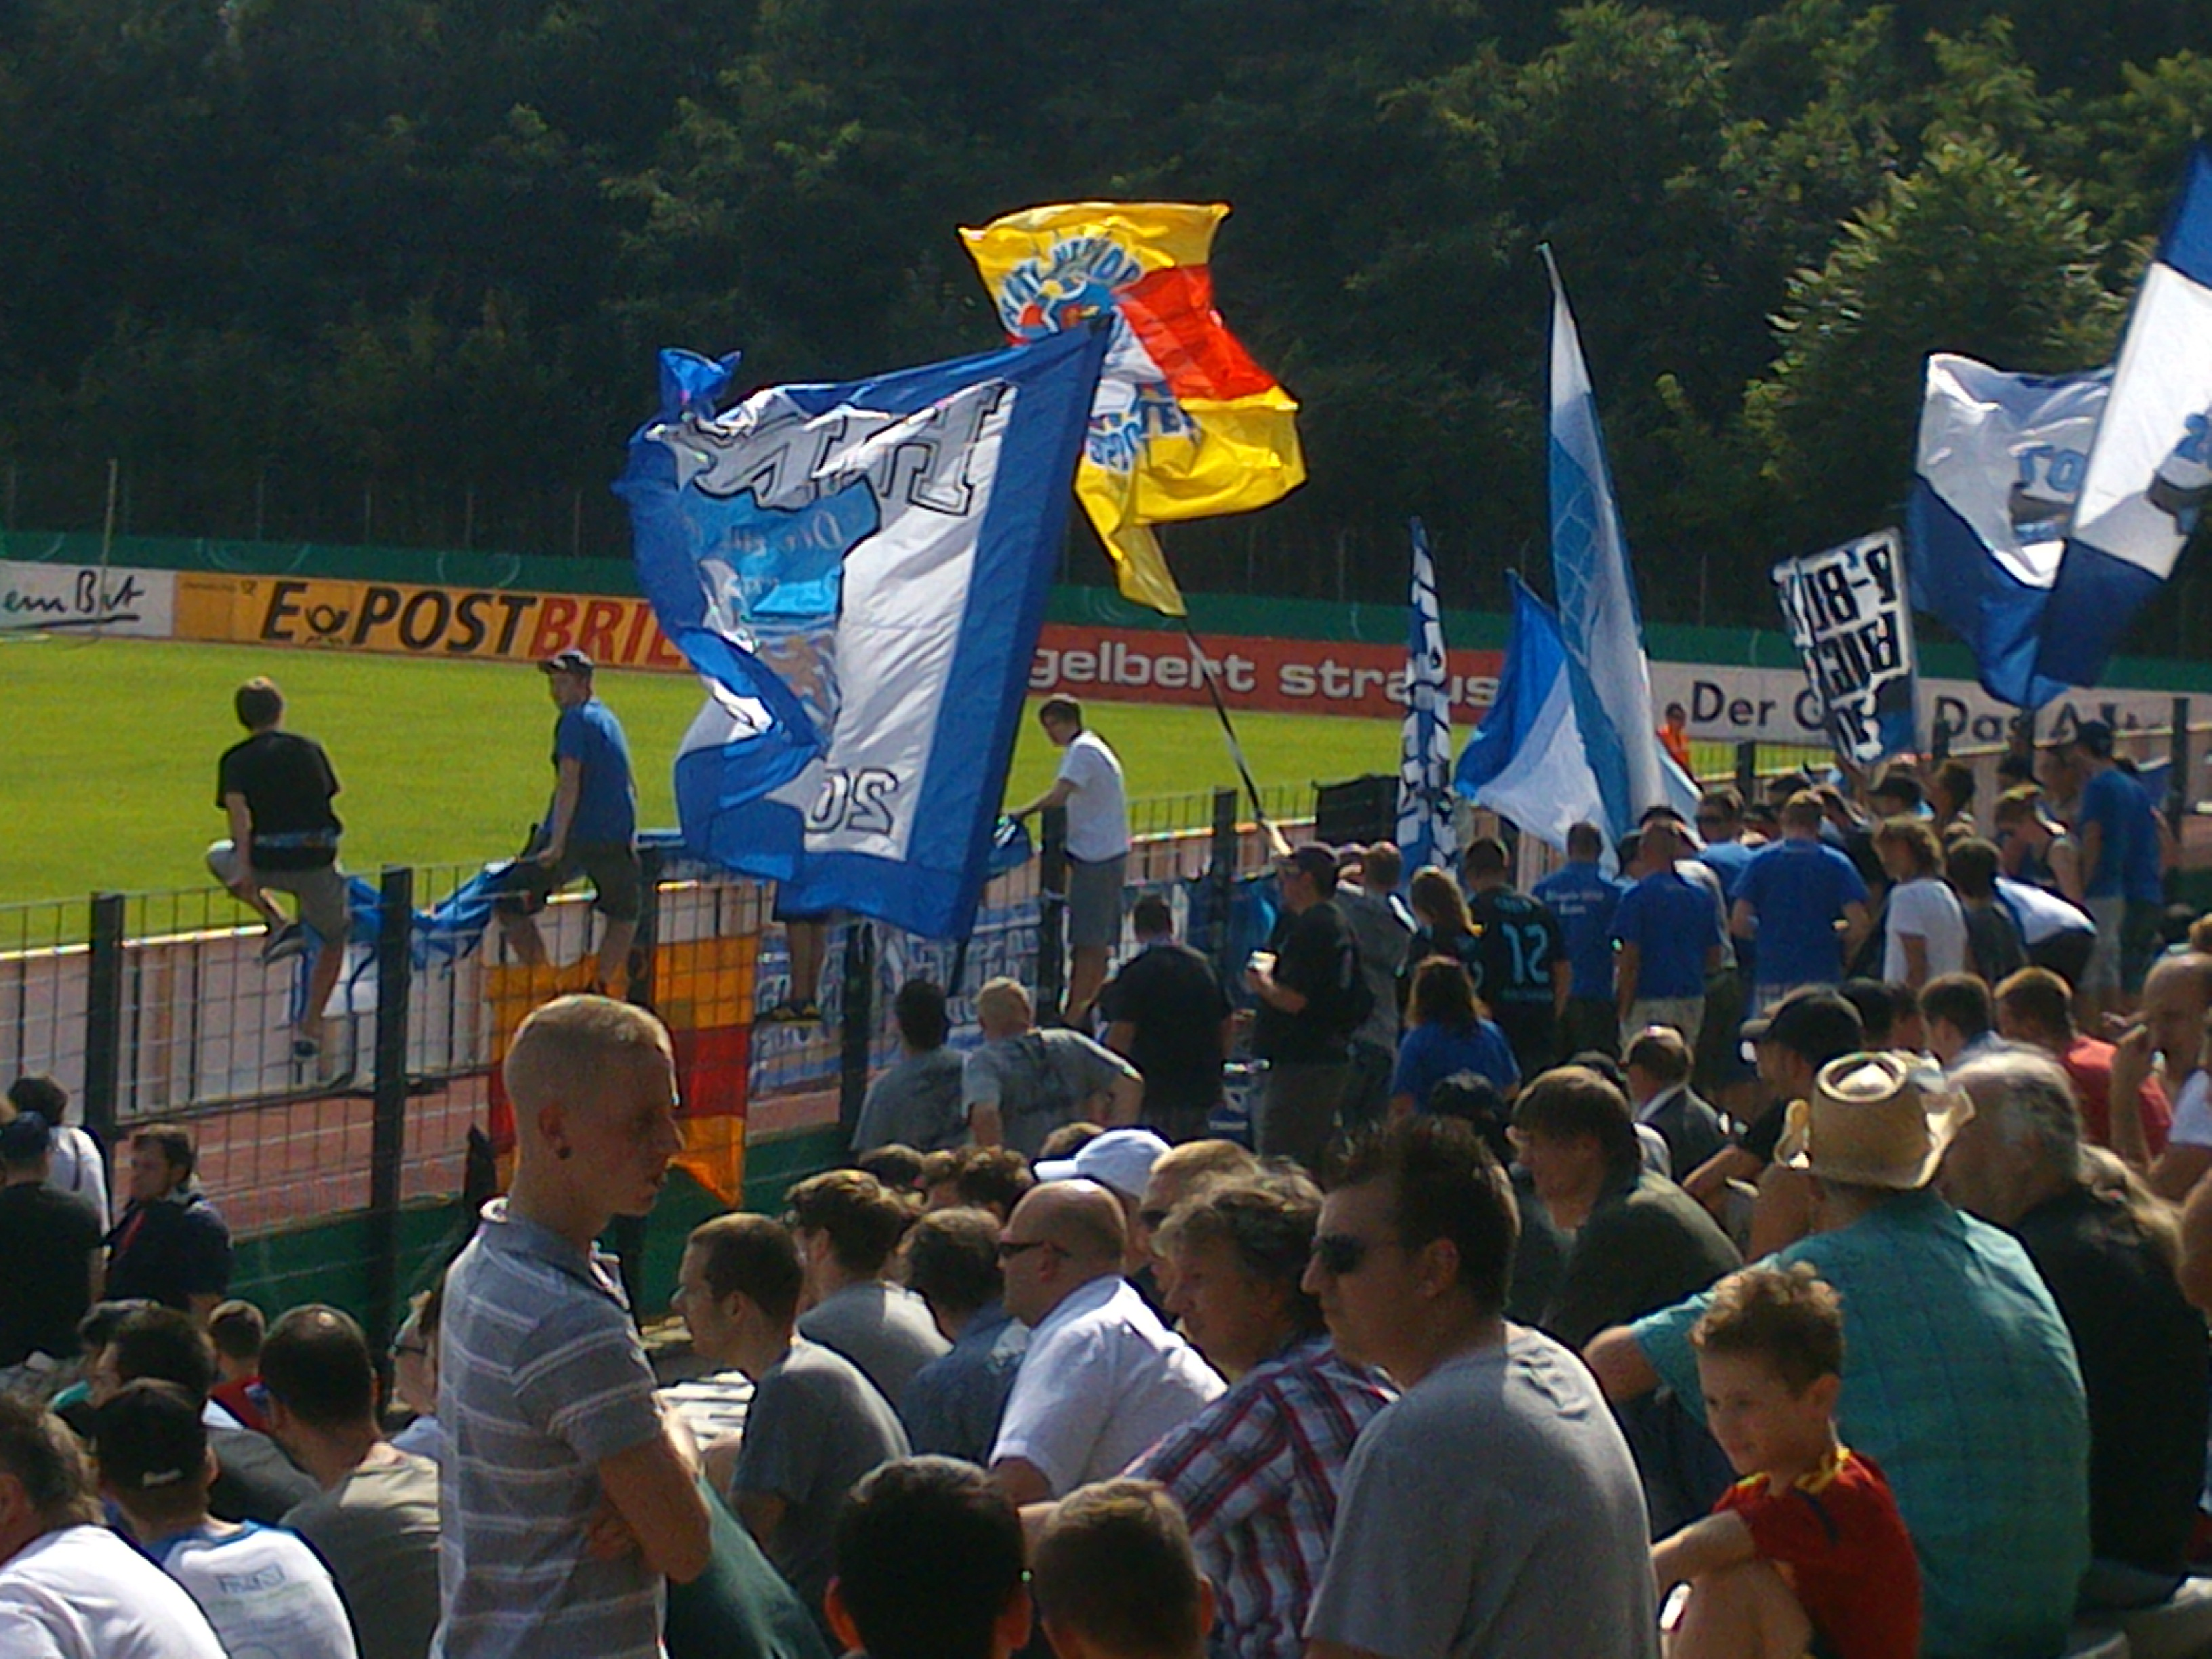 Hoffenheim fans before kick-off. Yesterday. The day before today.